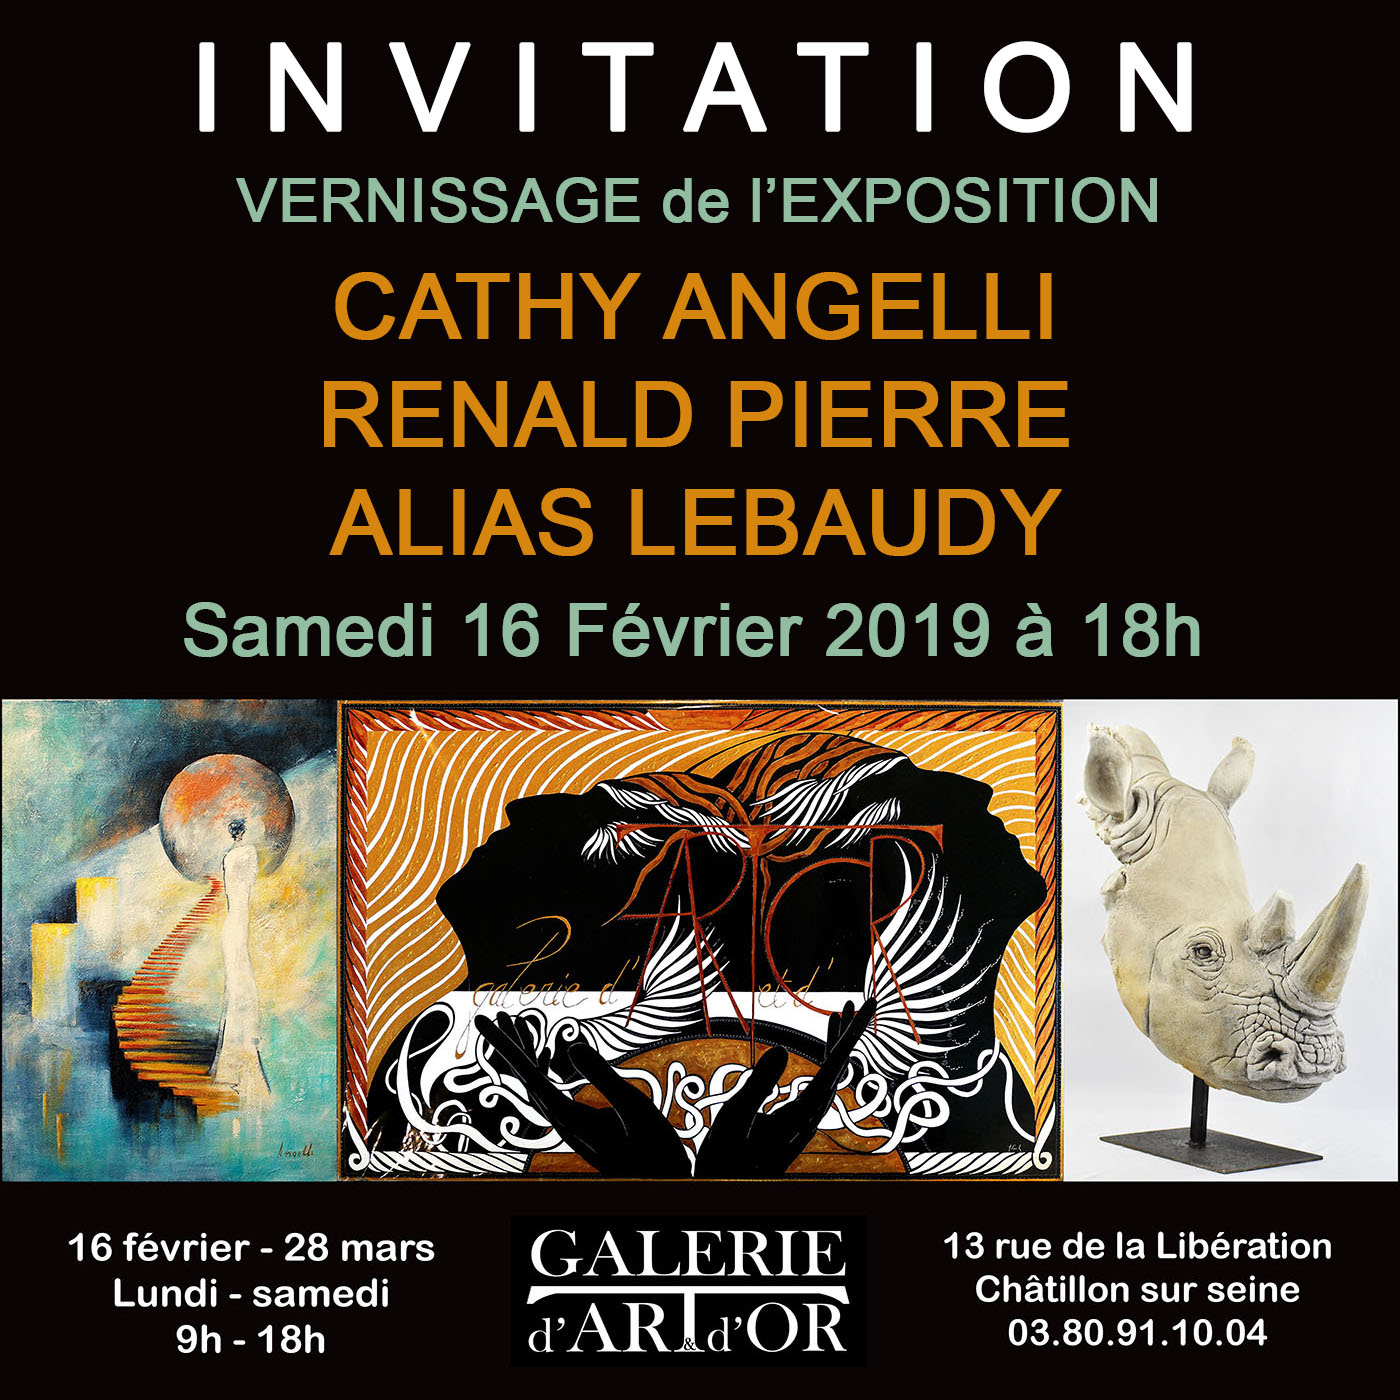 InvitationVernissage41